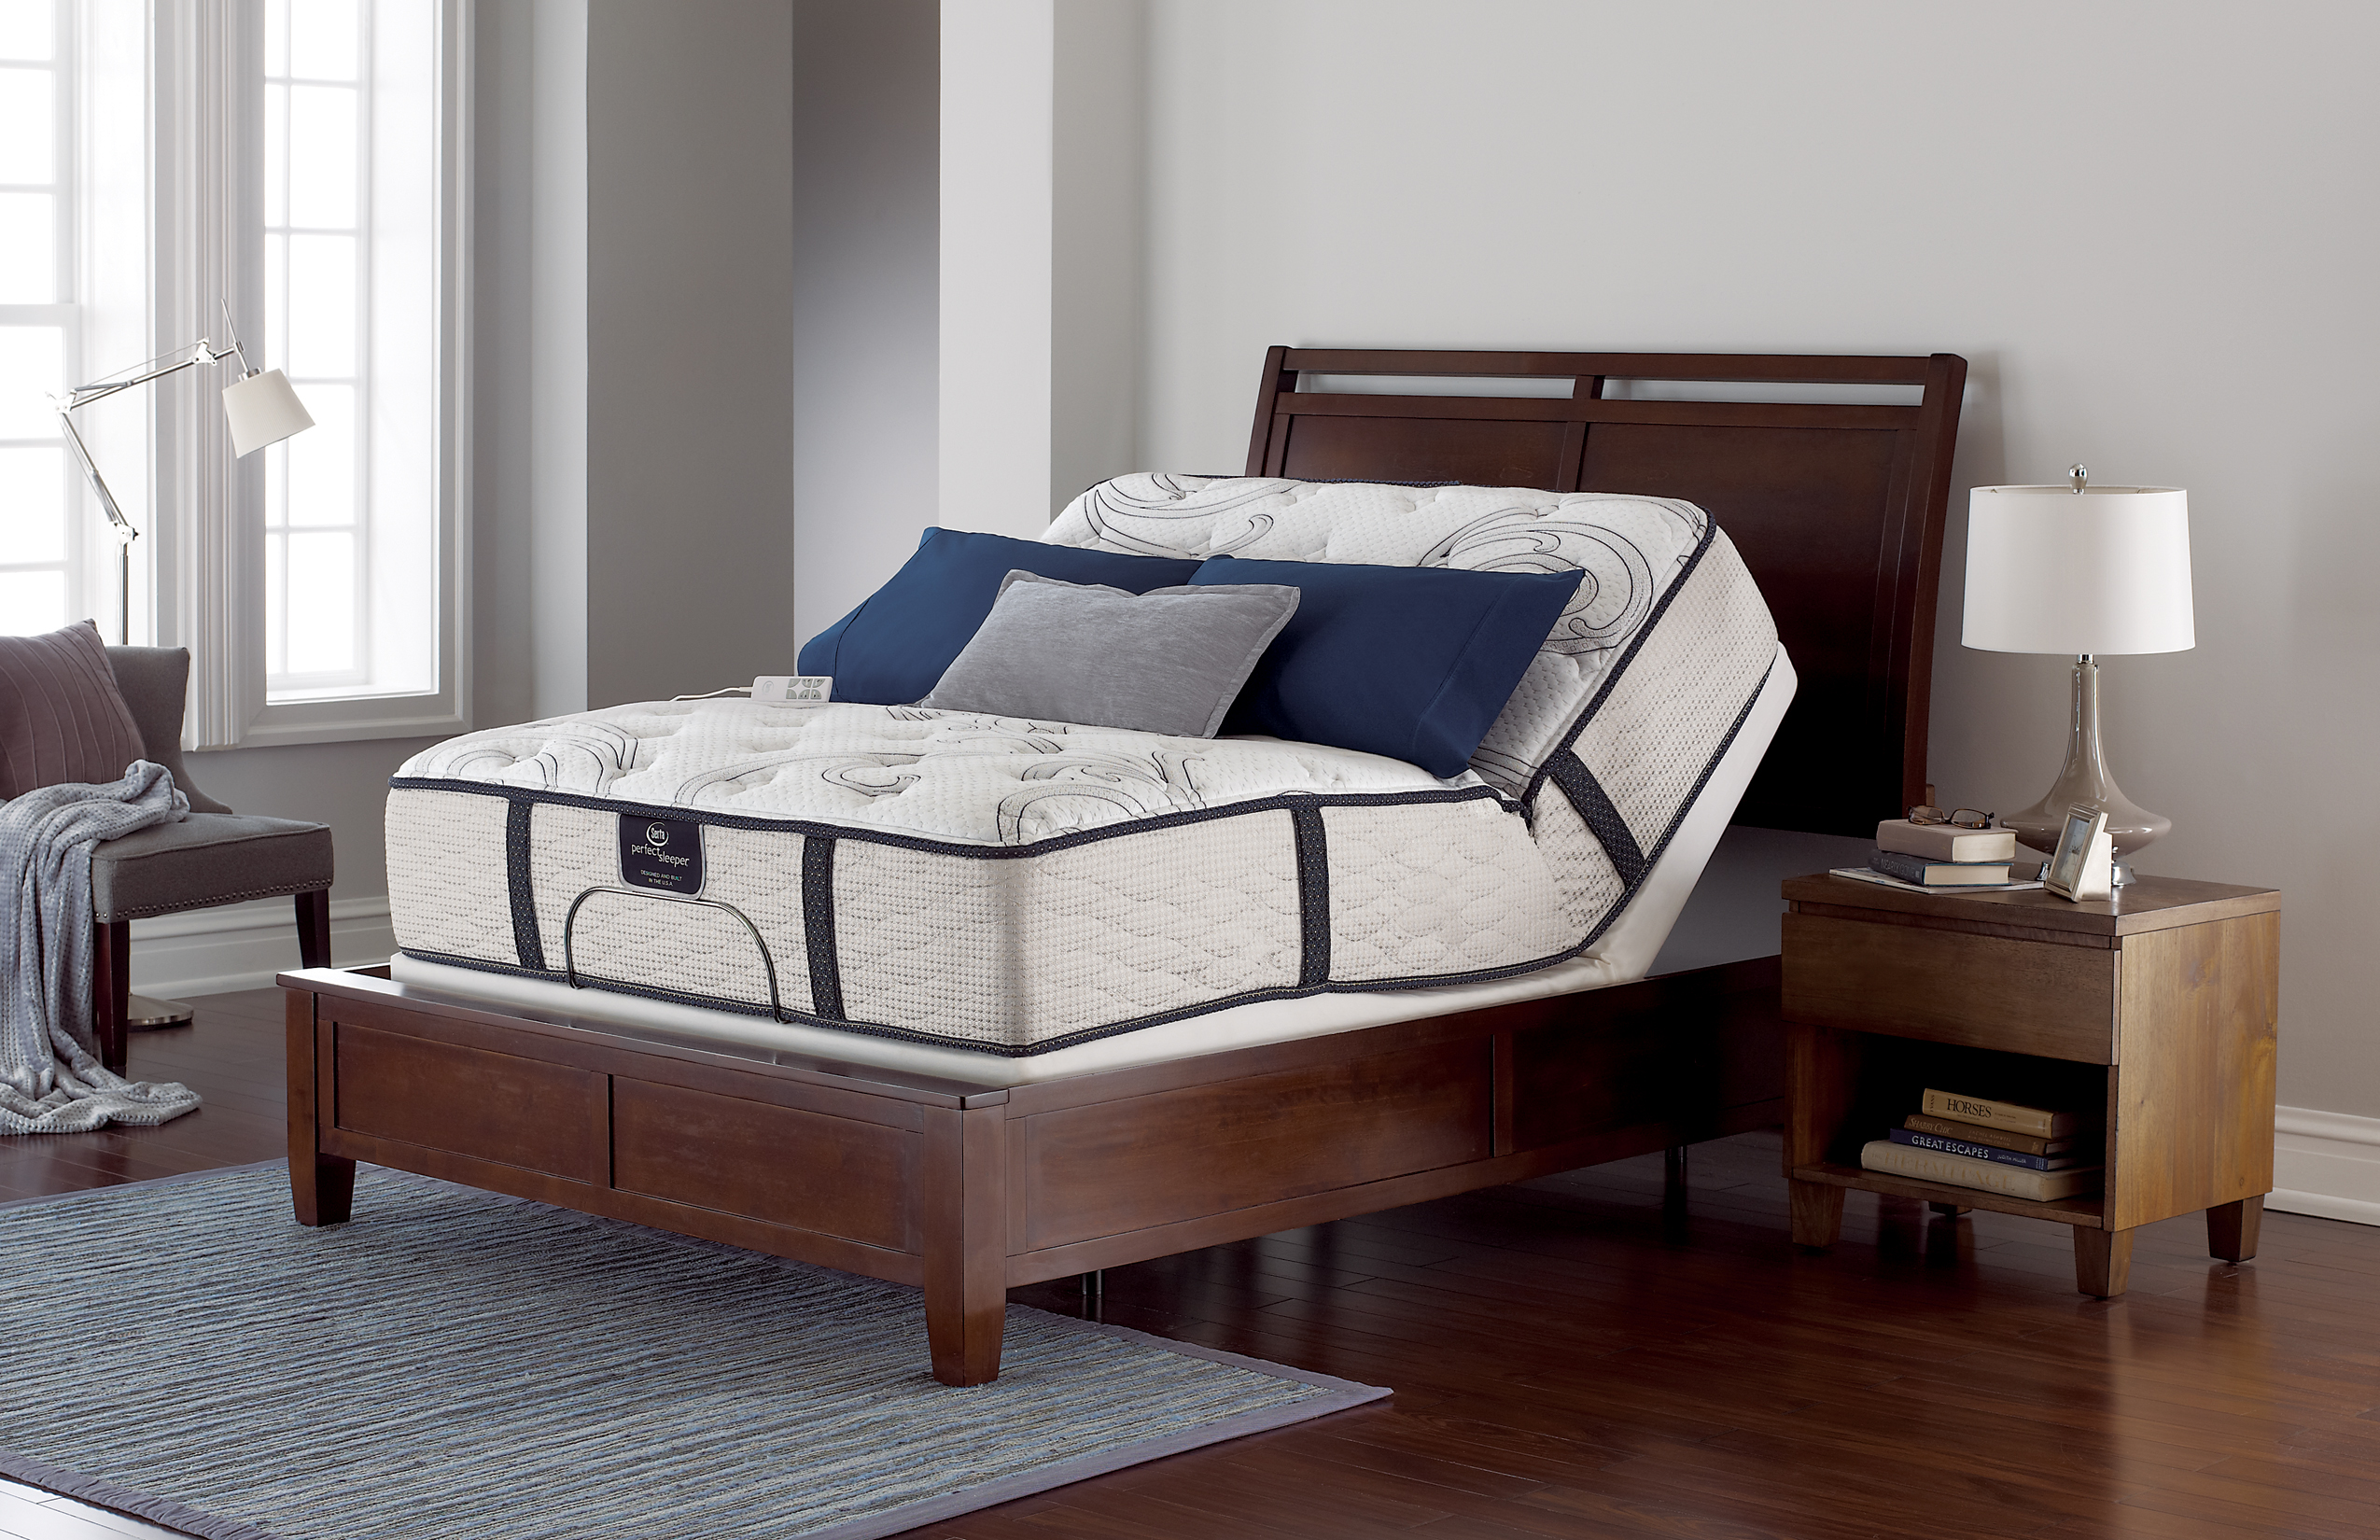 Serta Icomfort Reviews >> Serta - Mattress Reviews | GoodBed.com